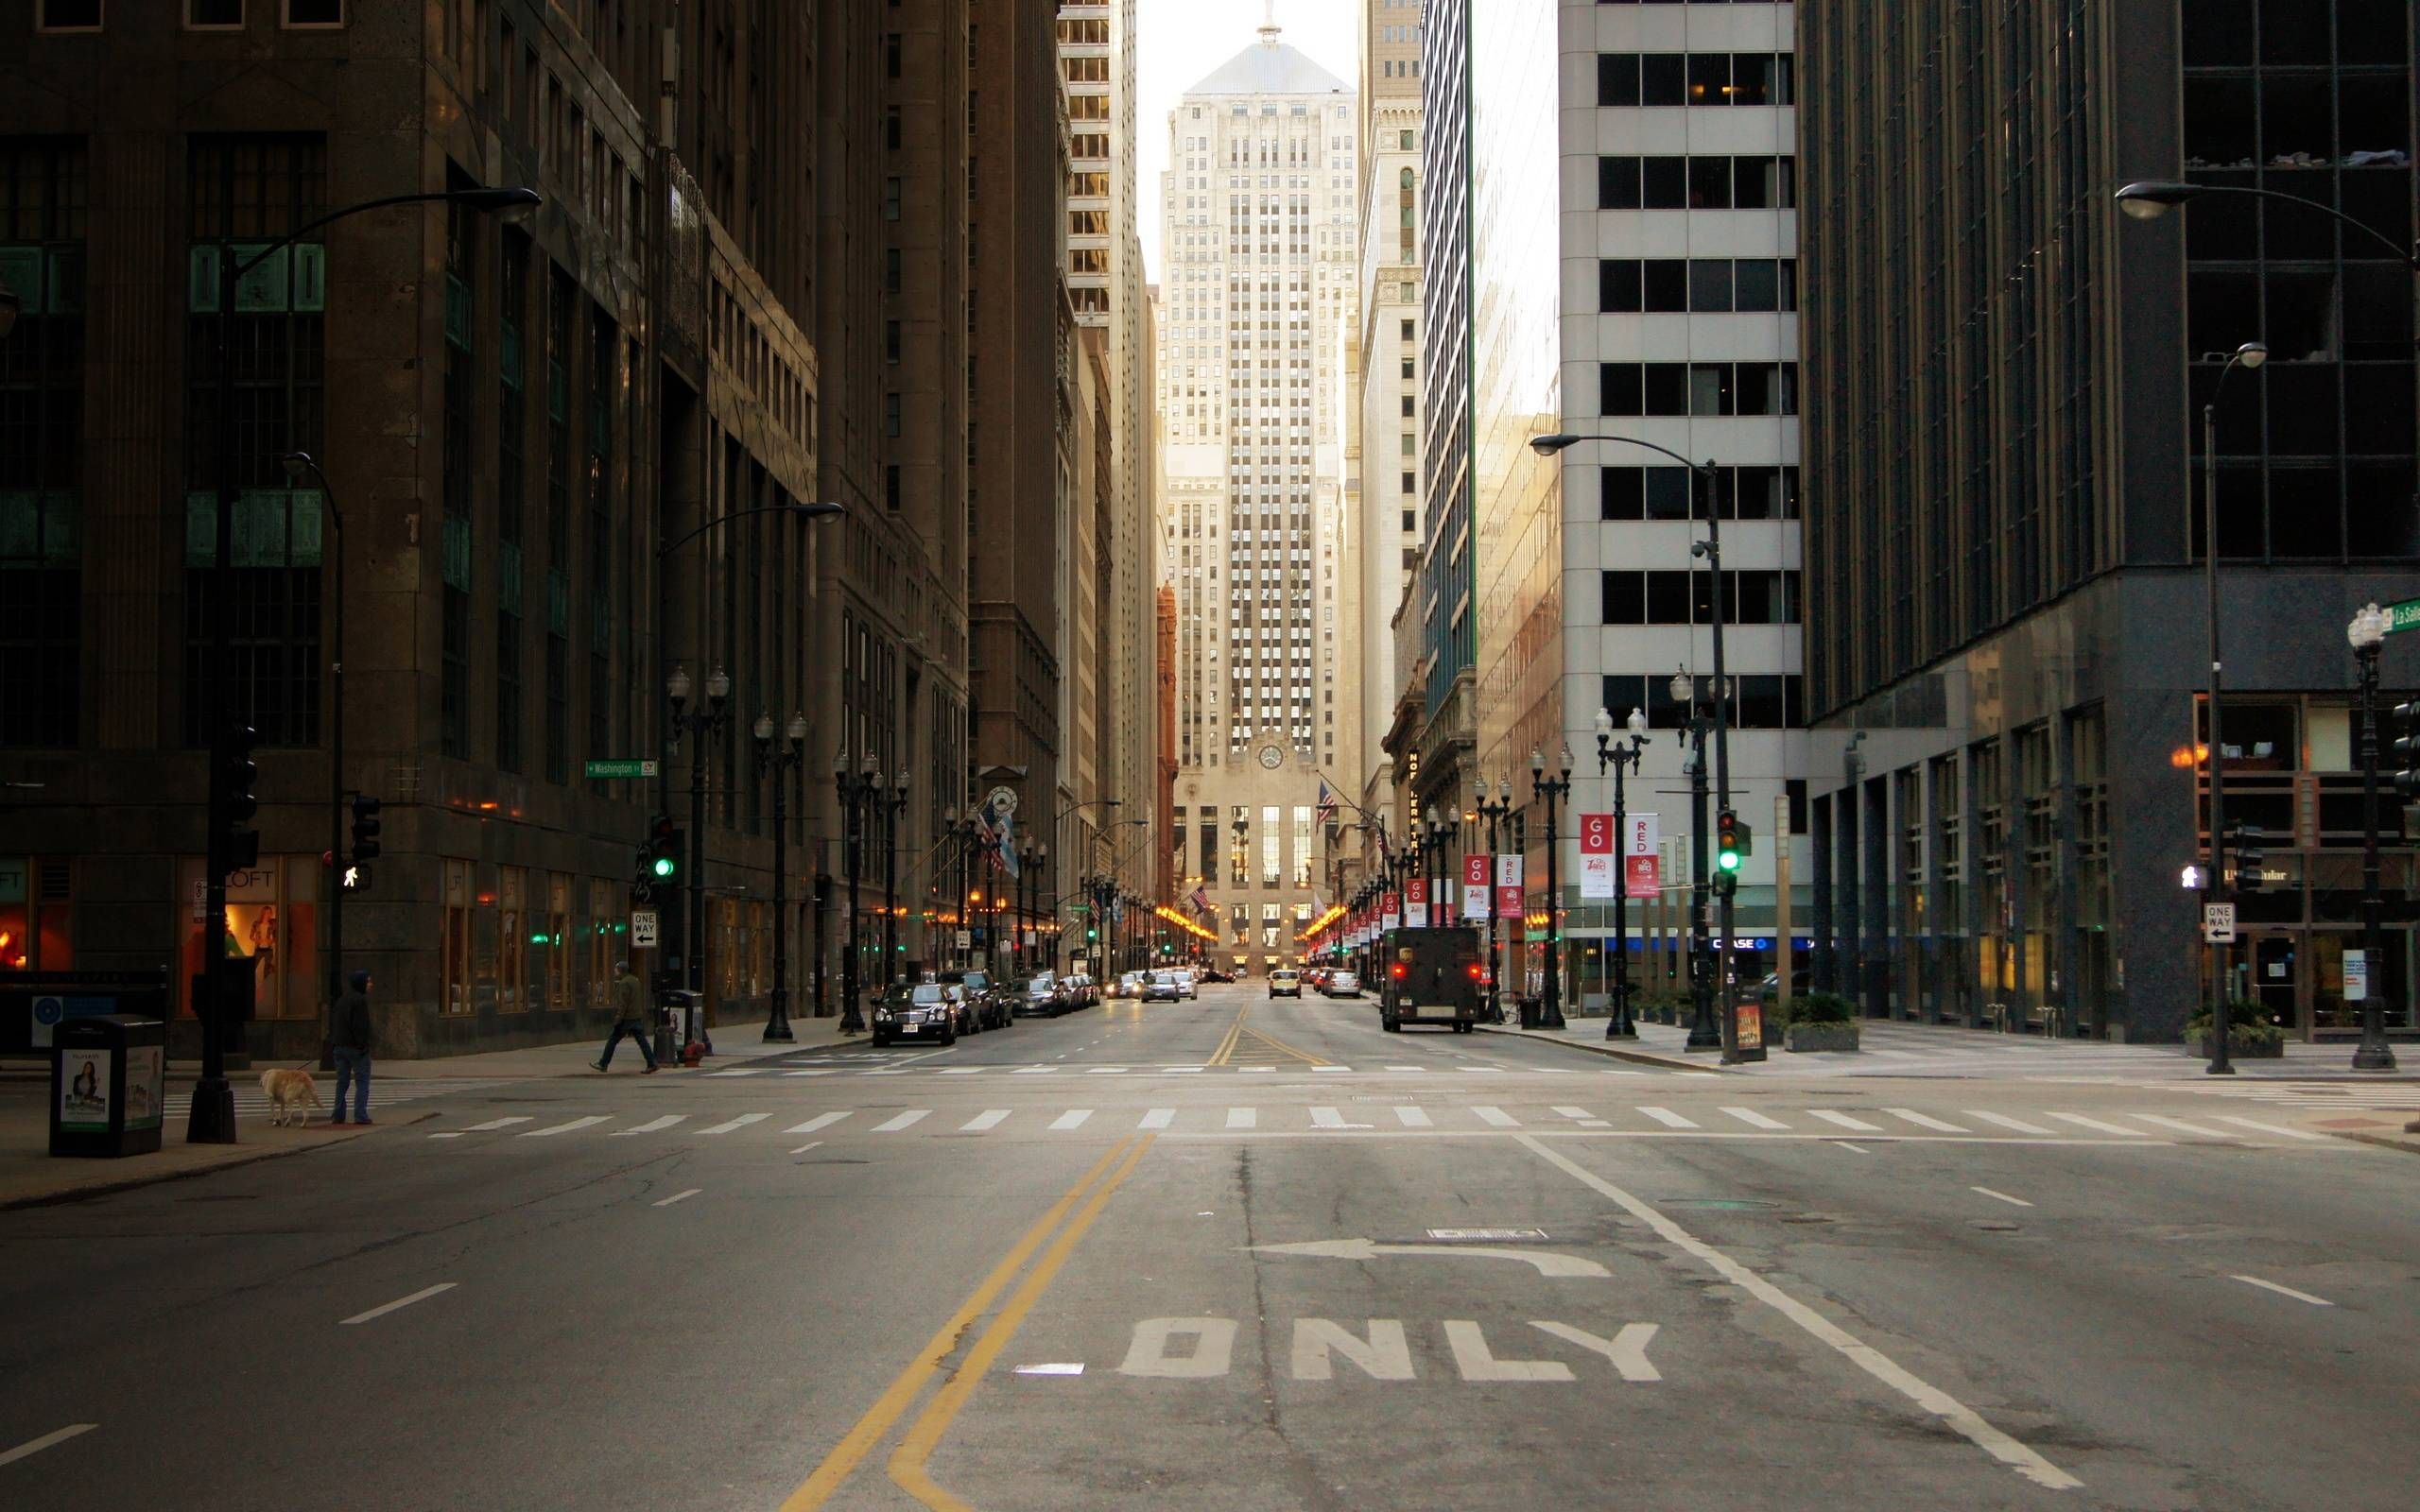 City street backgrounds wallpaper cave city street of chicago in usa skyscrapers wallpaper voltagebd